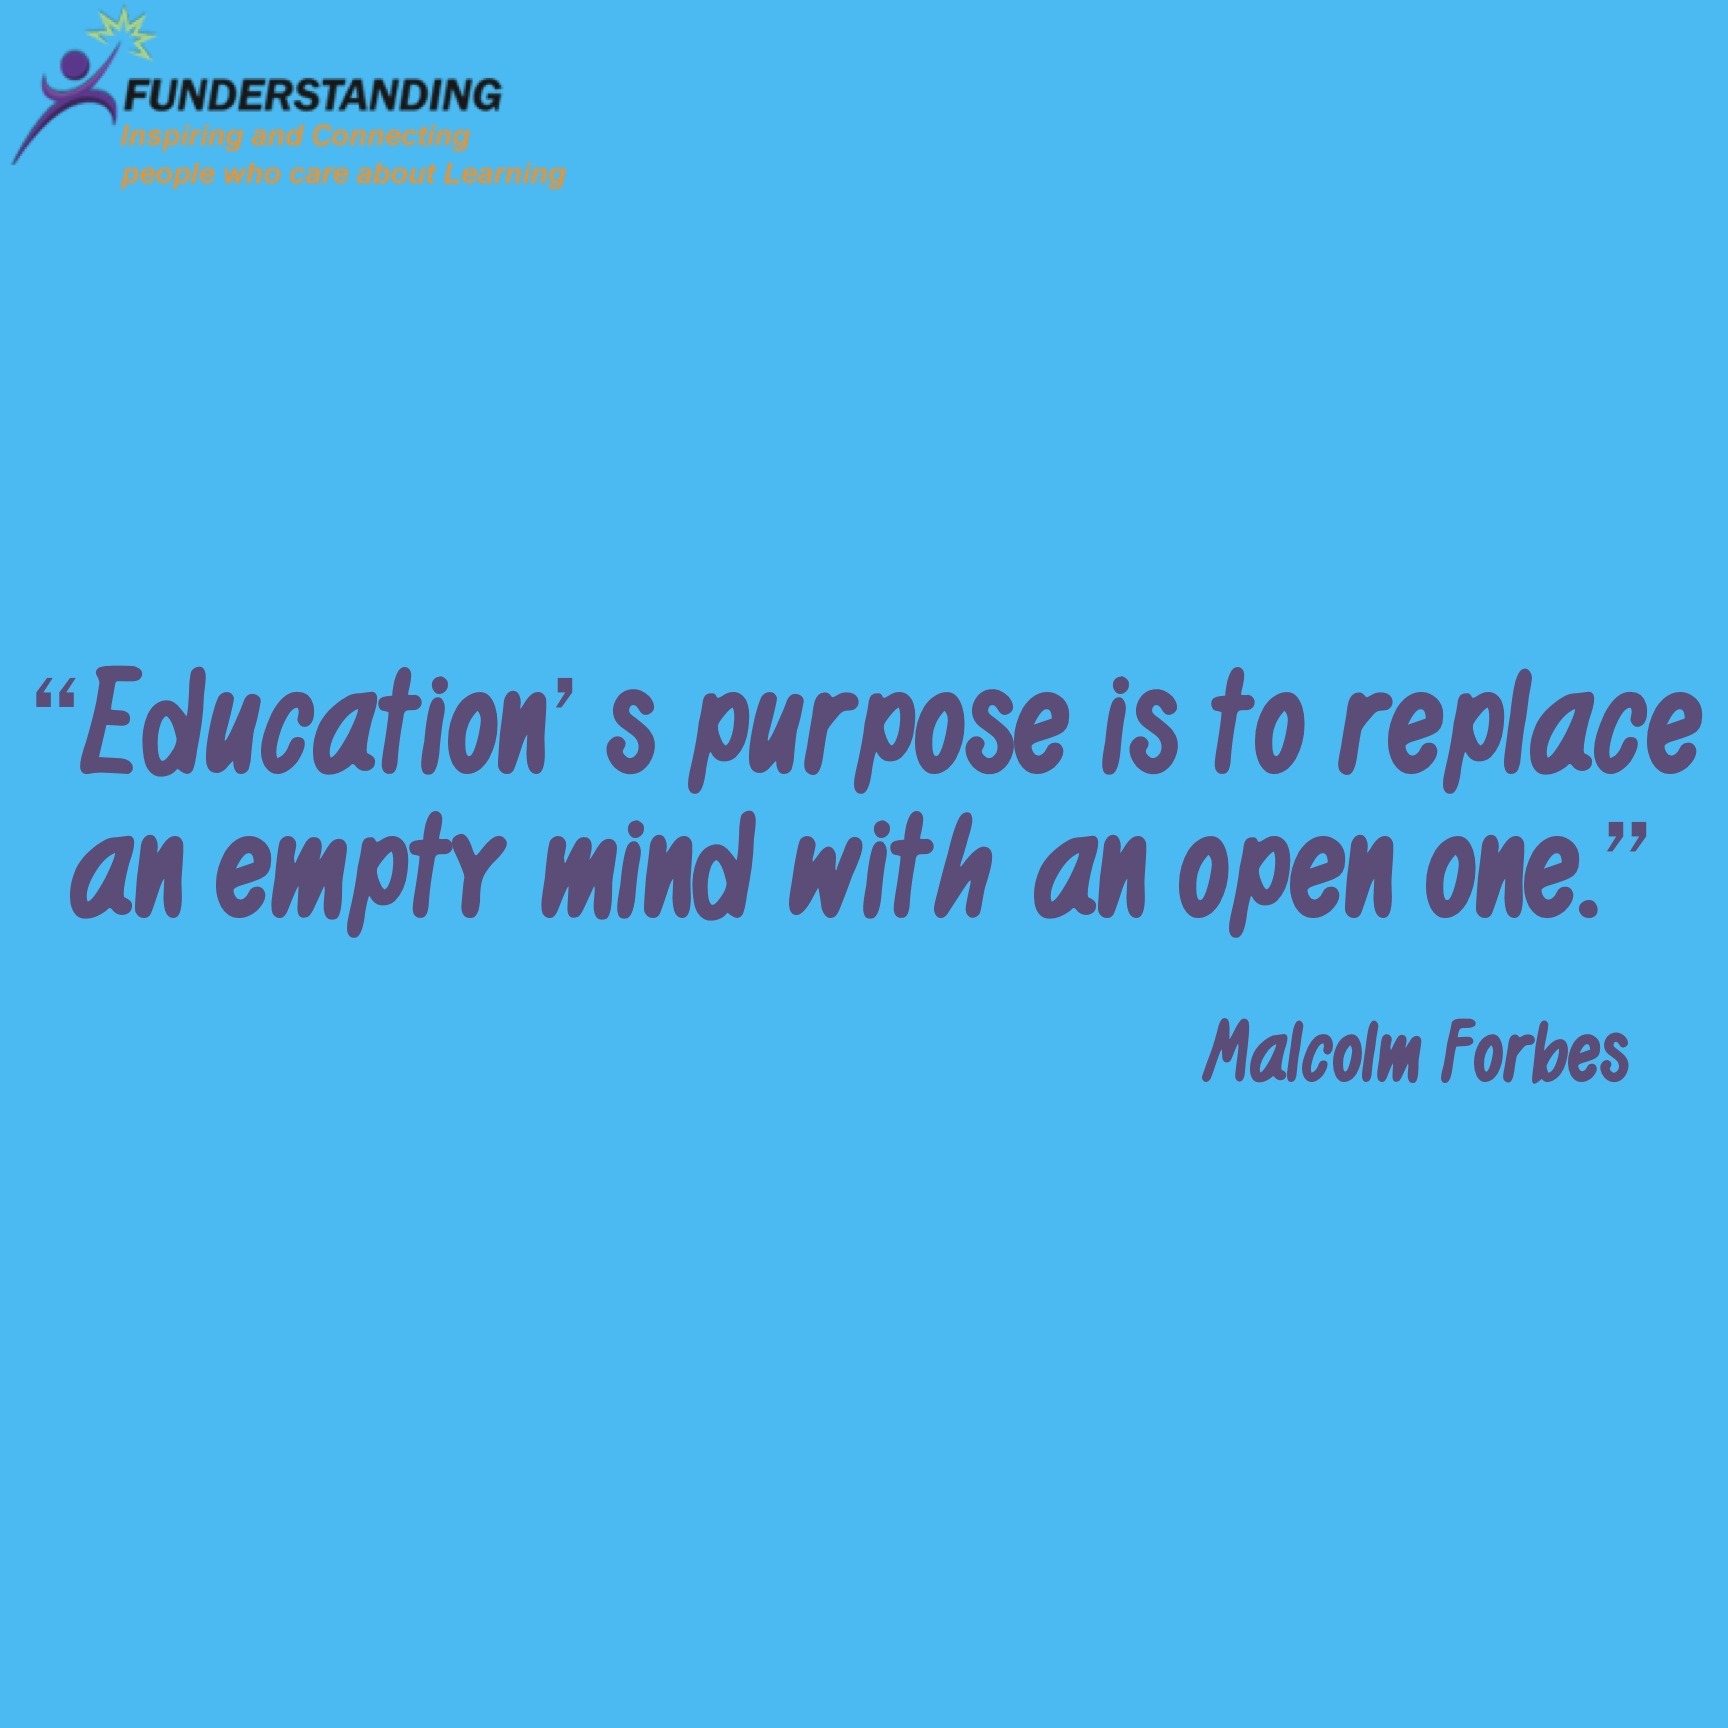 Thought For The Day Quotes Quoteoftheday45Funderstanding  Funderstanding Education